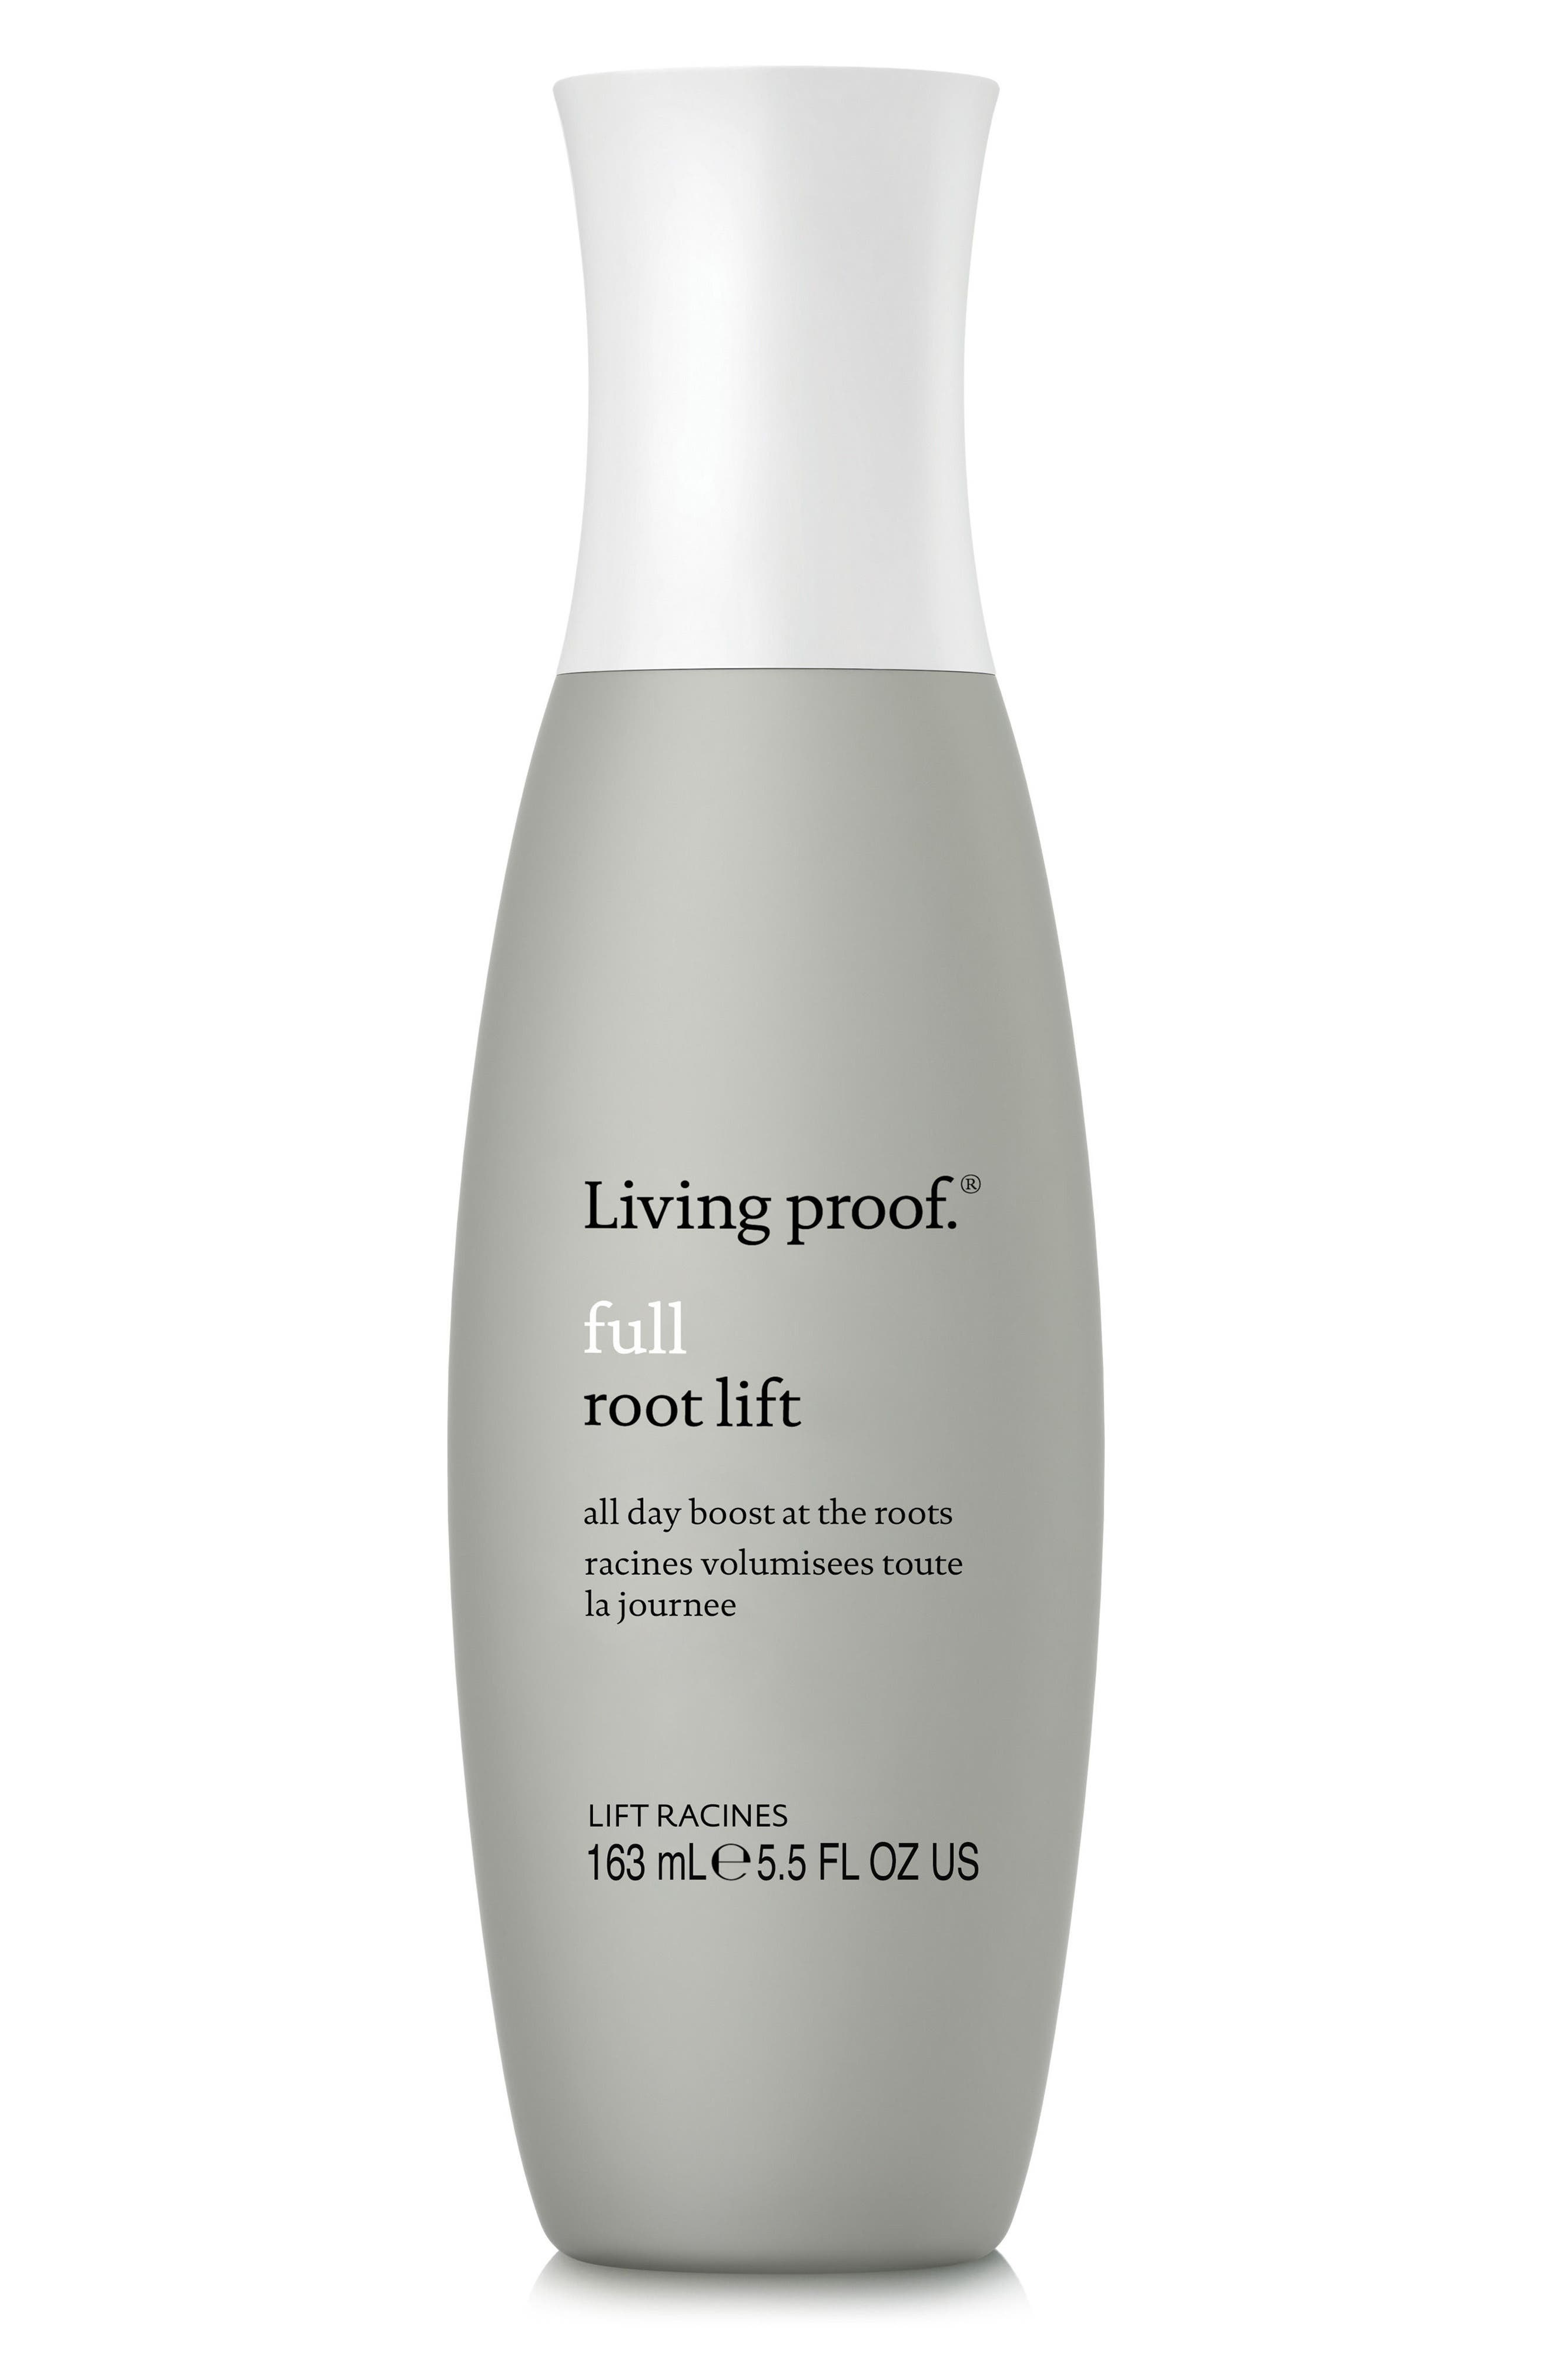 Alternate Image 1 Selected - Living proof® Full Root Lift